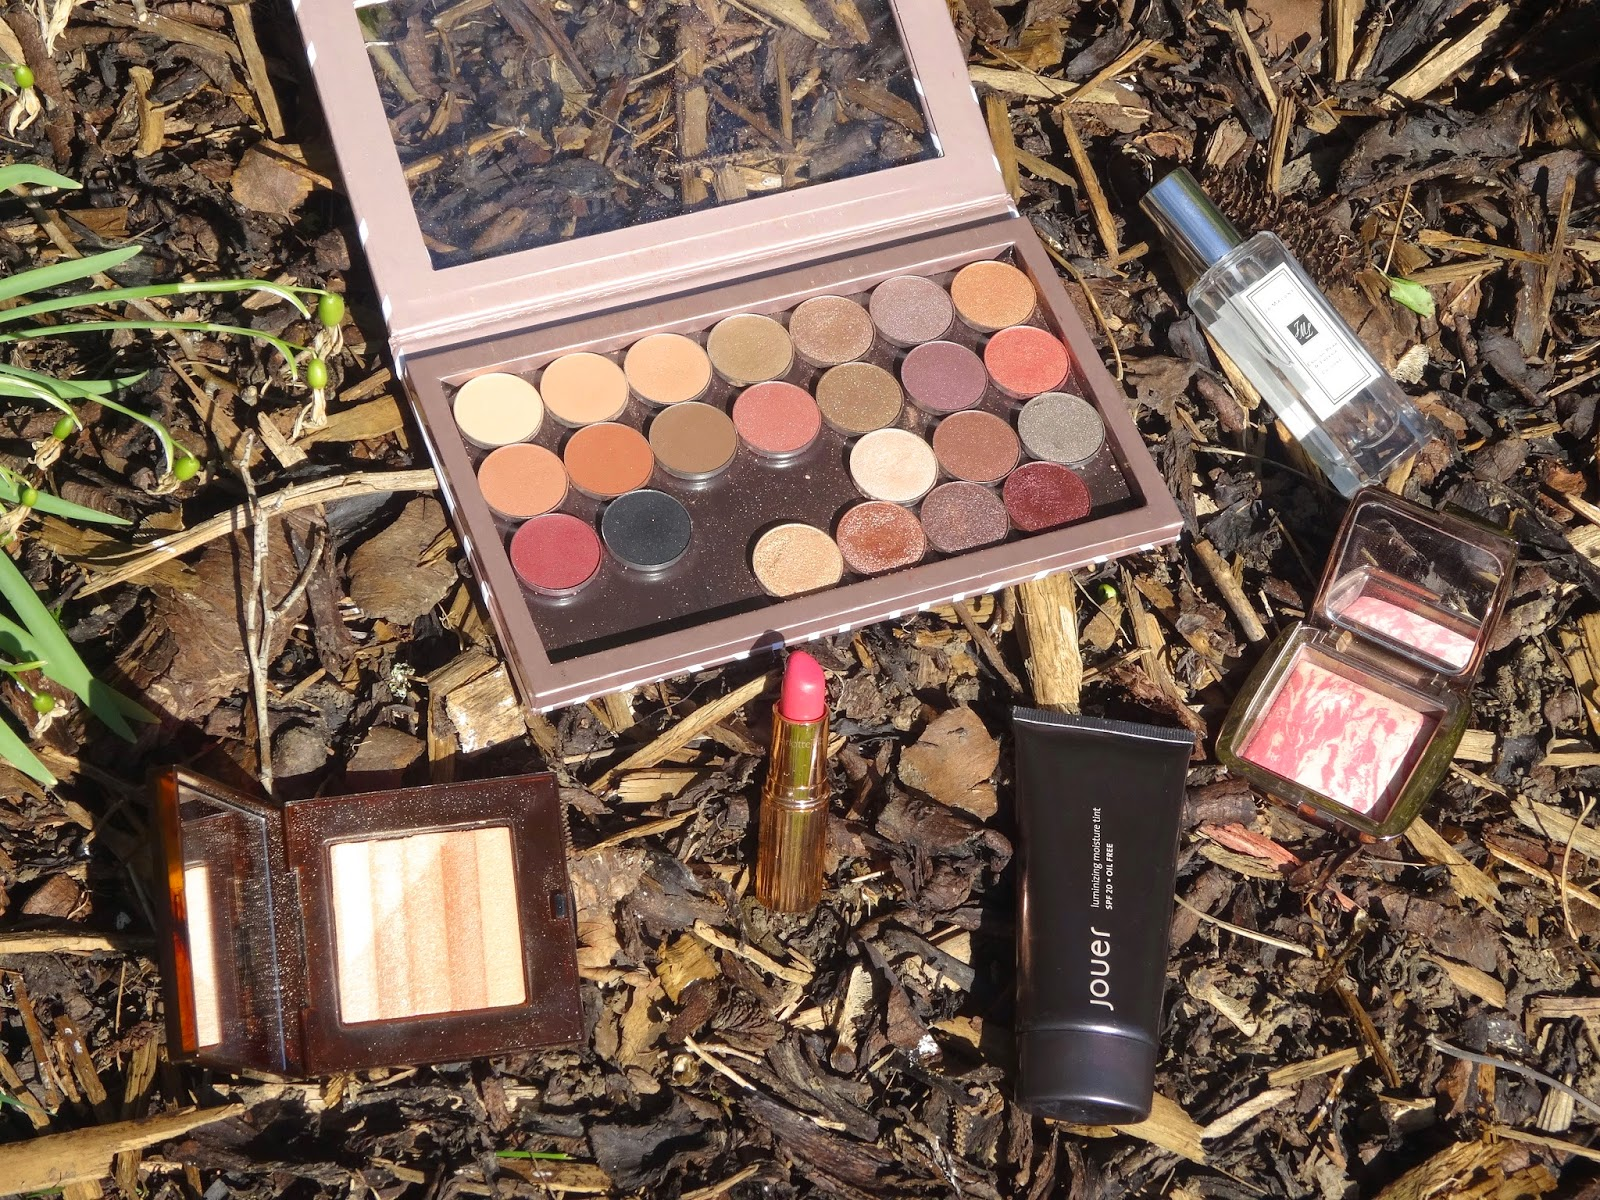 Charlotte Tilbury, Bobbi Brown, Jouer, Hourlass Makeup Geek, Jo Malone